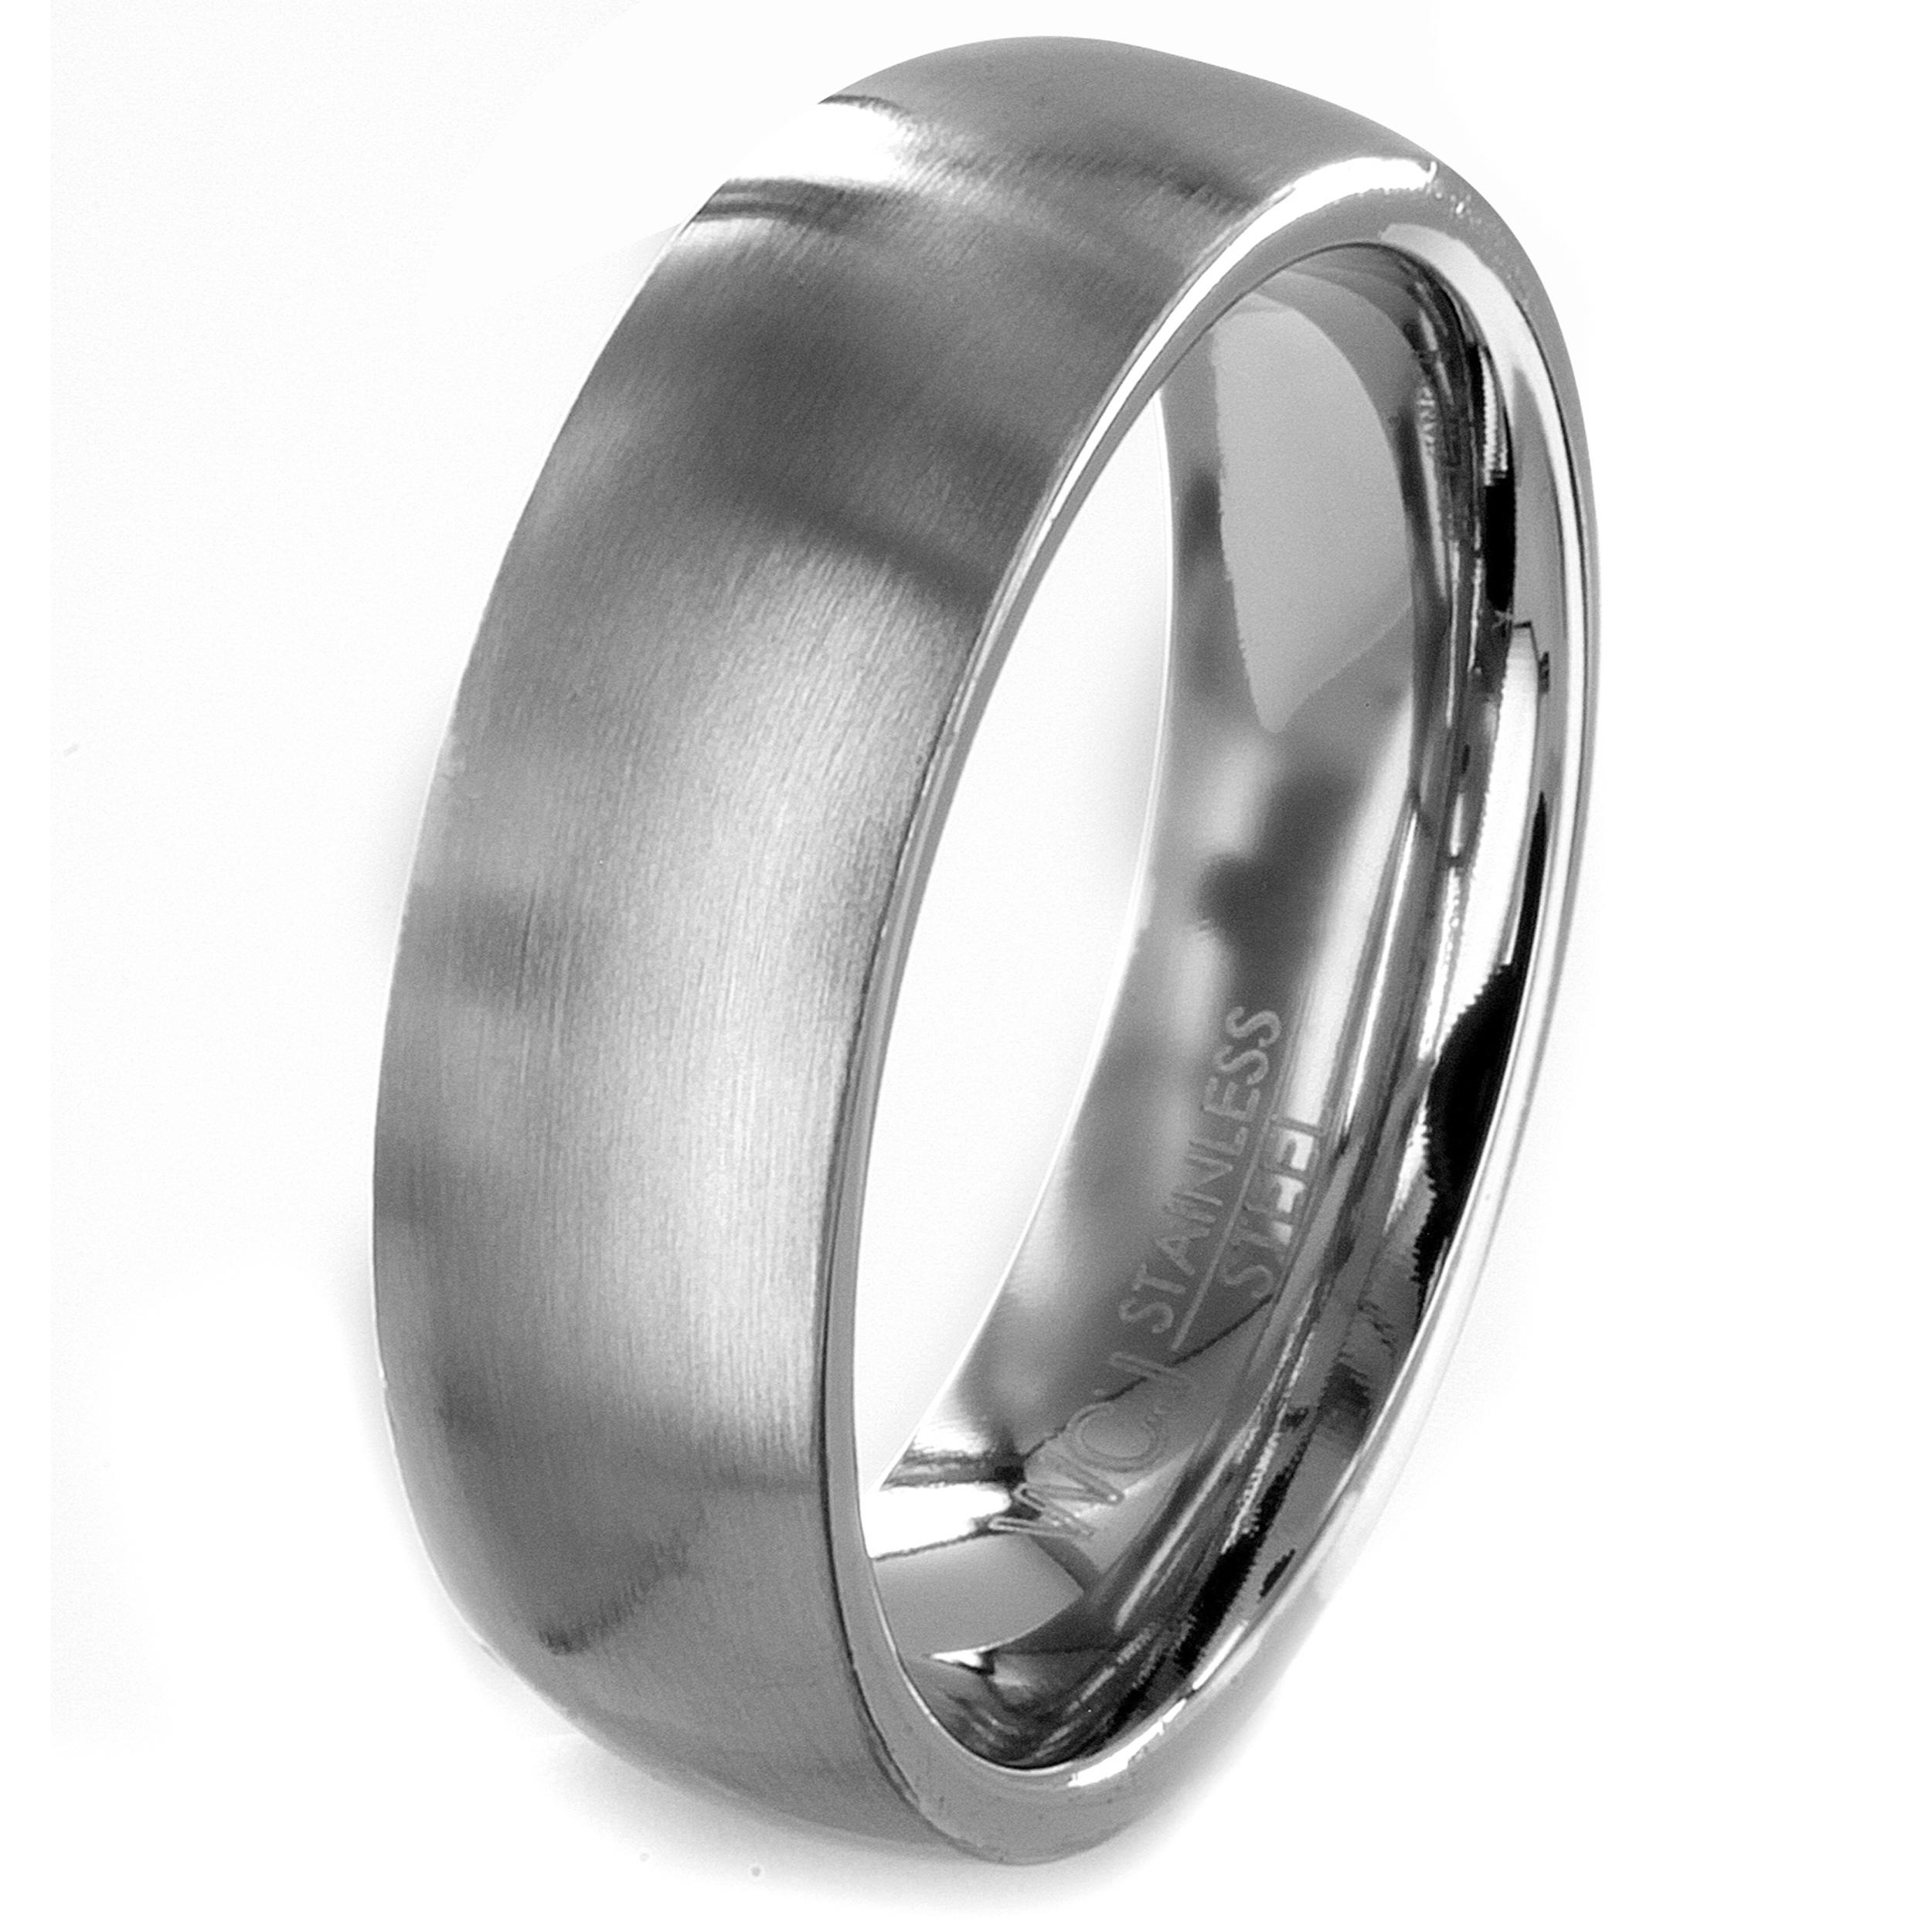 Stainless Steel Brushed Men's Wedding Band